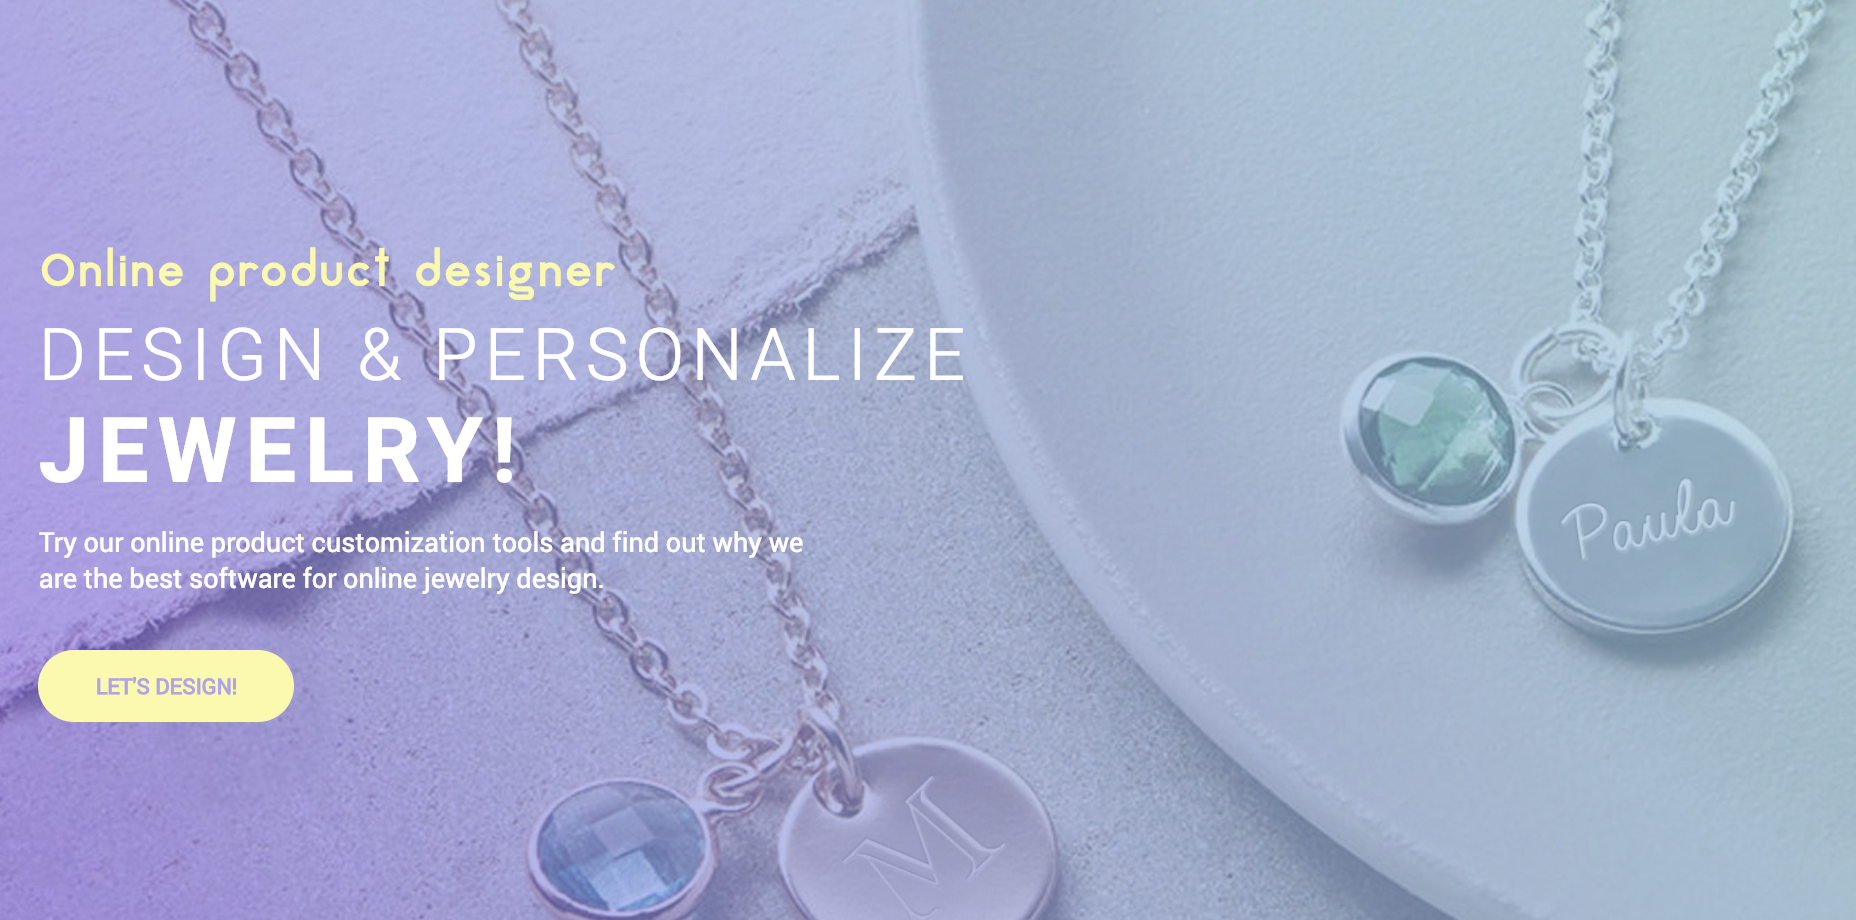 Online jewelry design software - Create personalized jewelry